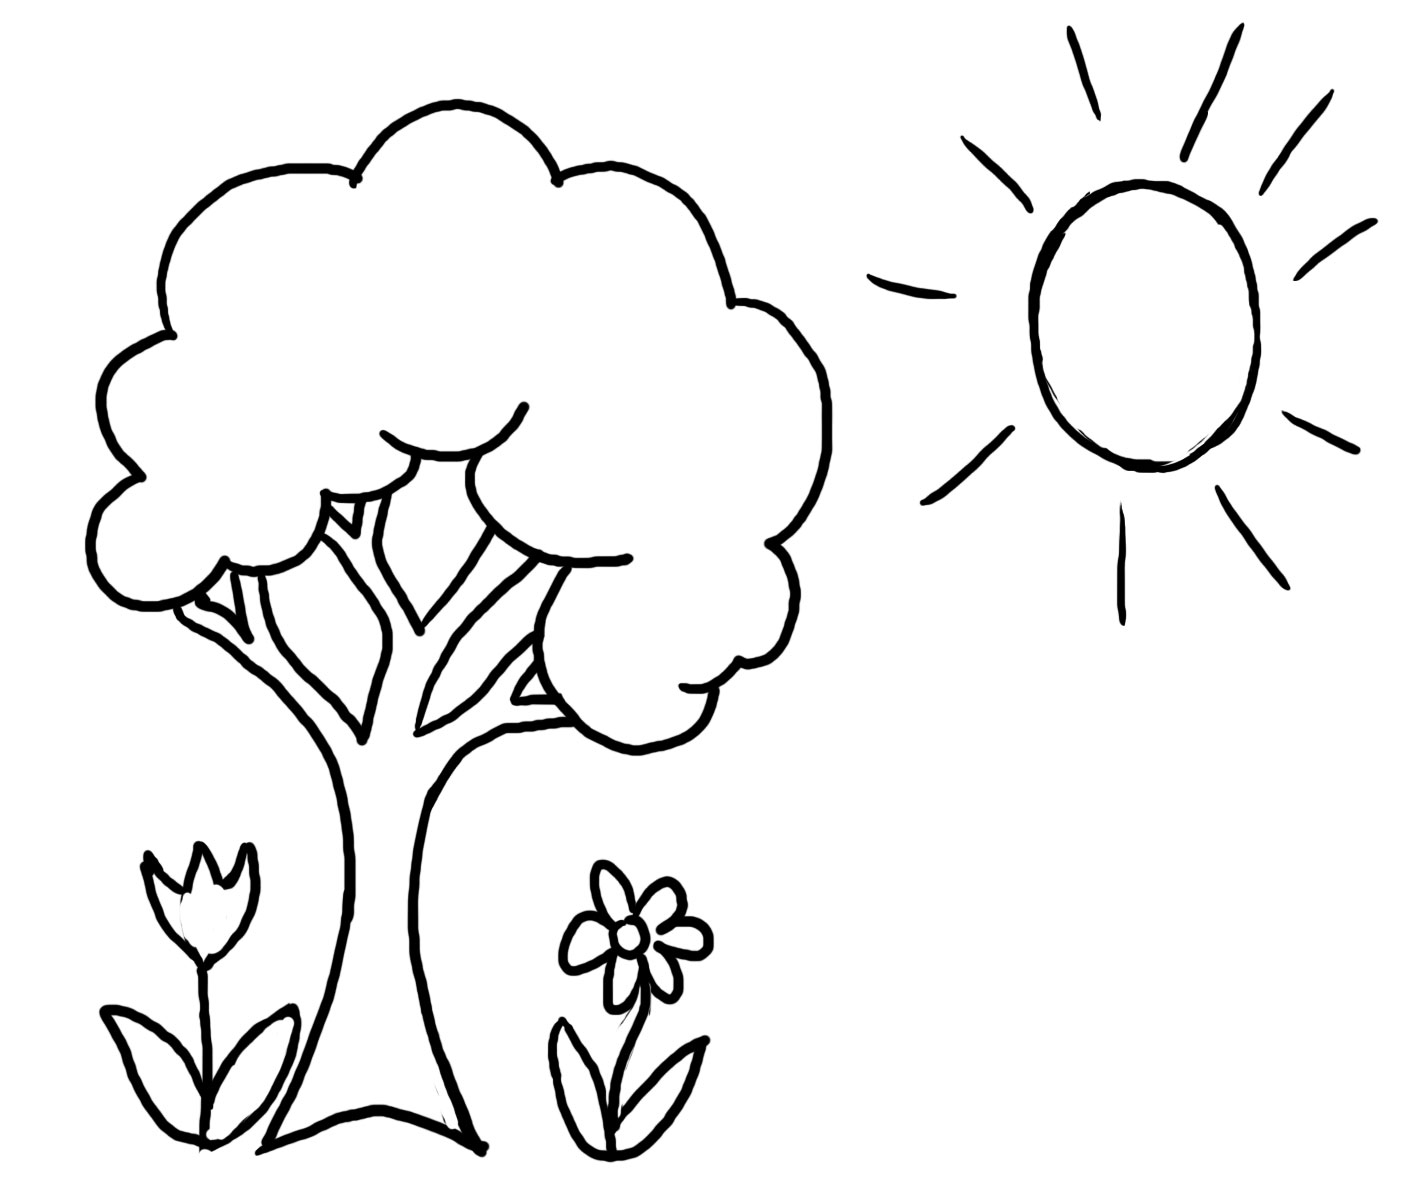 Preschool Coloring Pages (3)